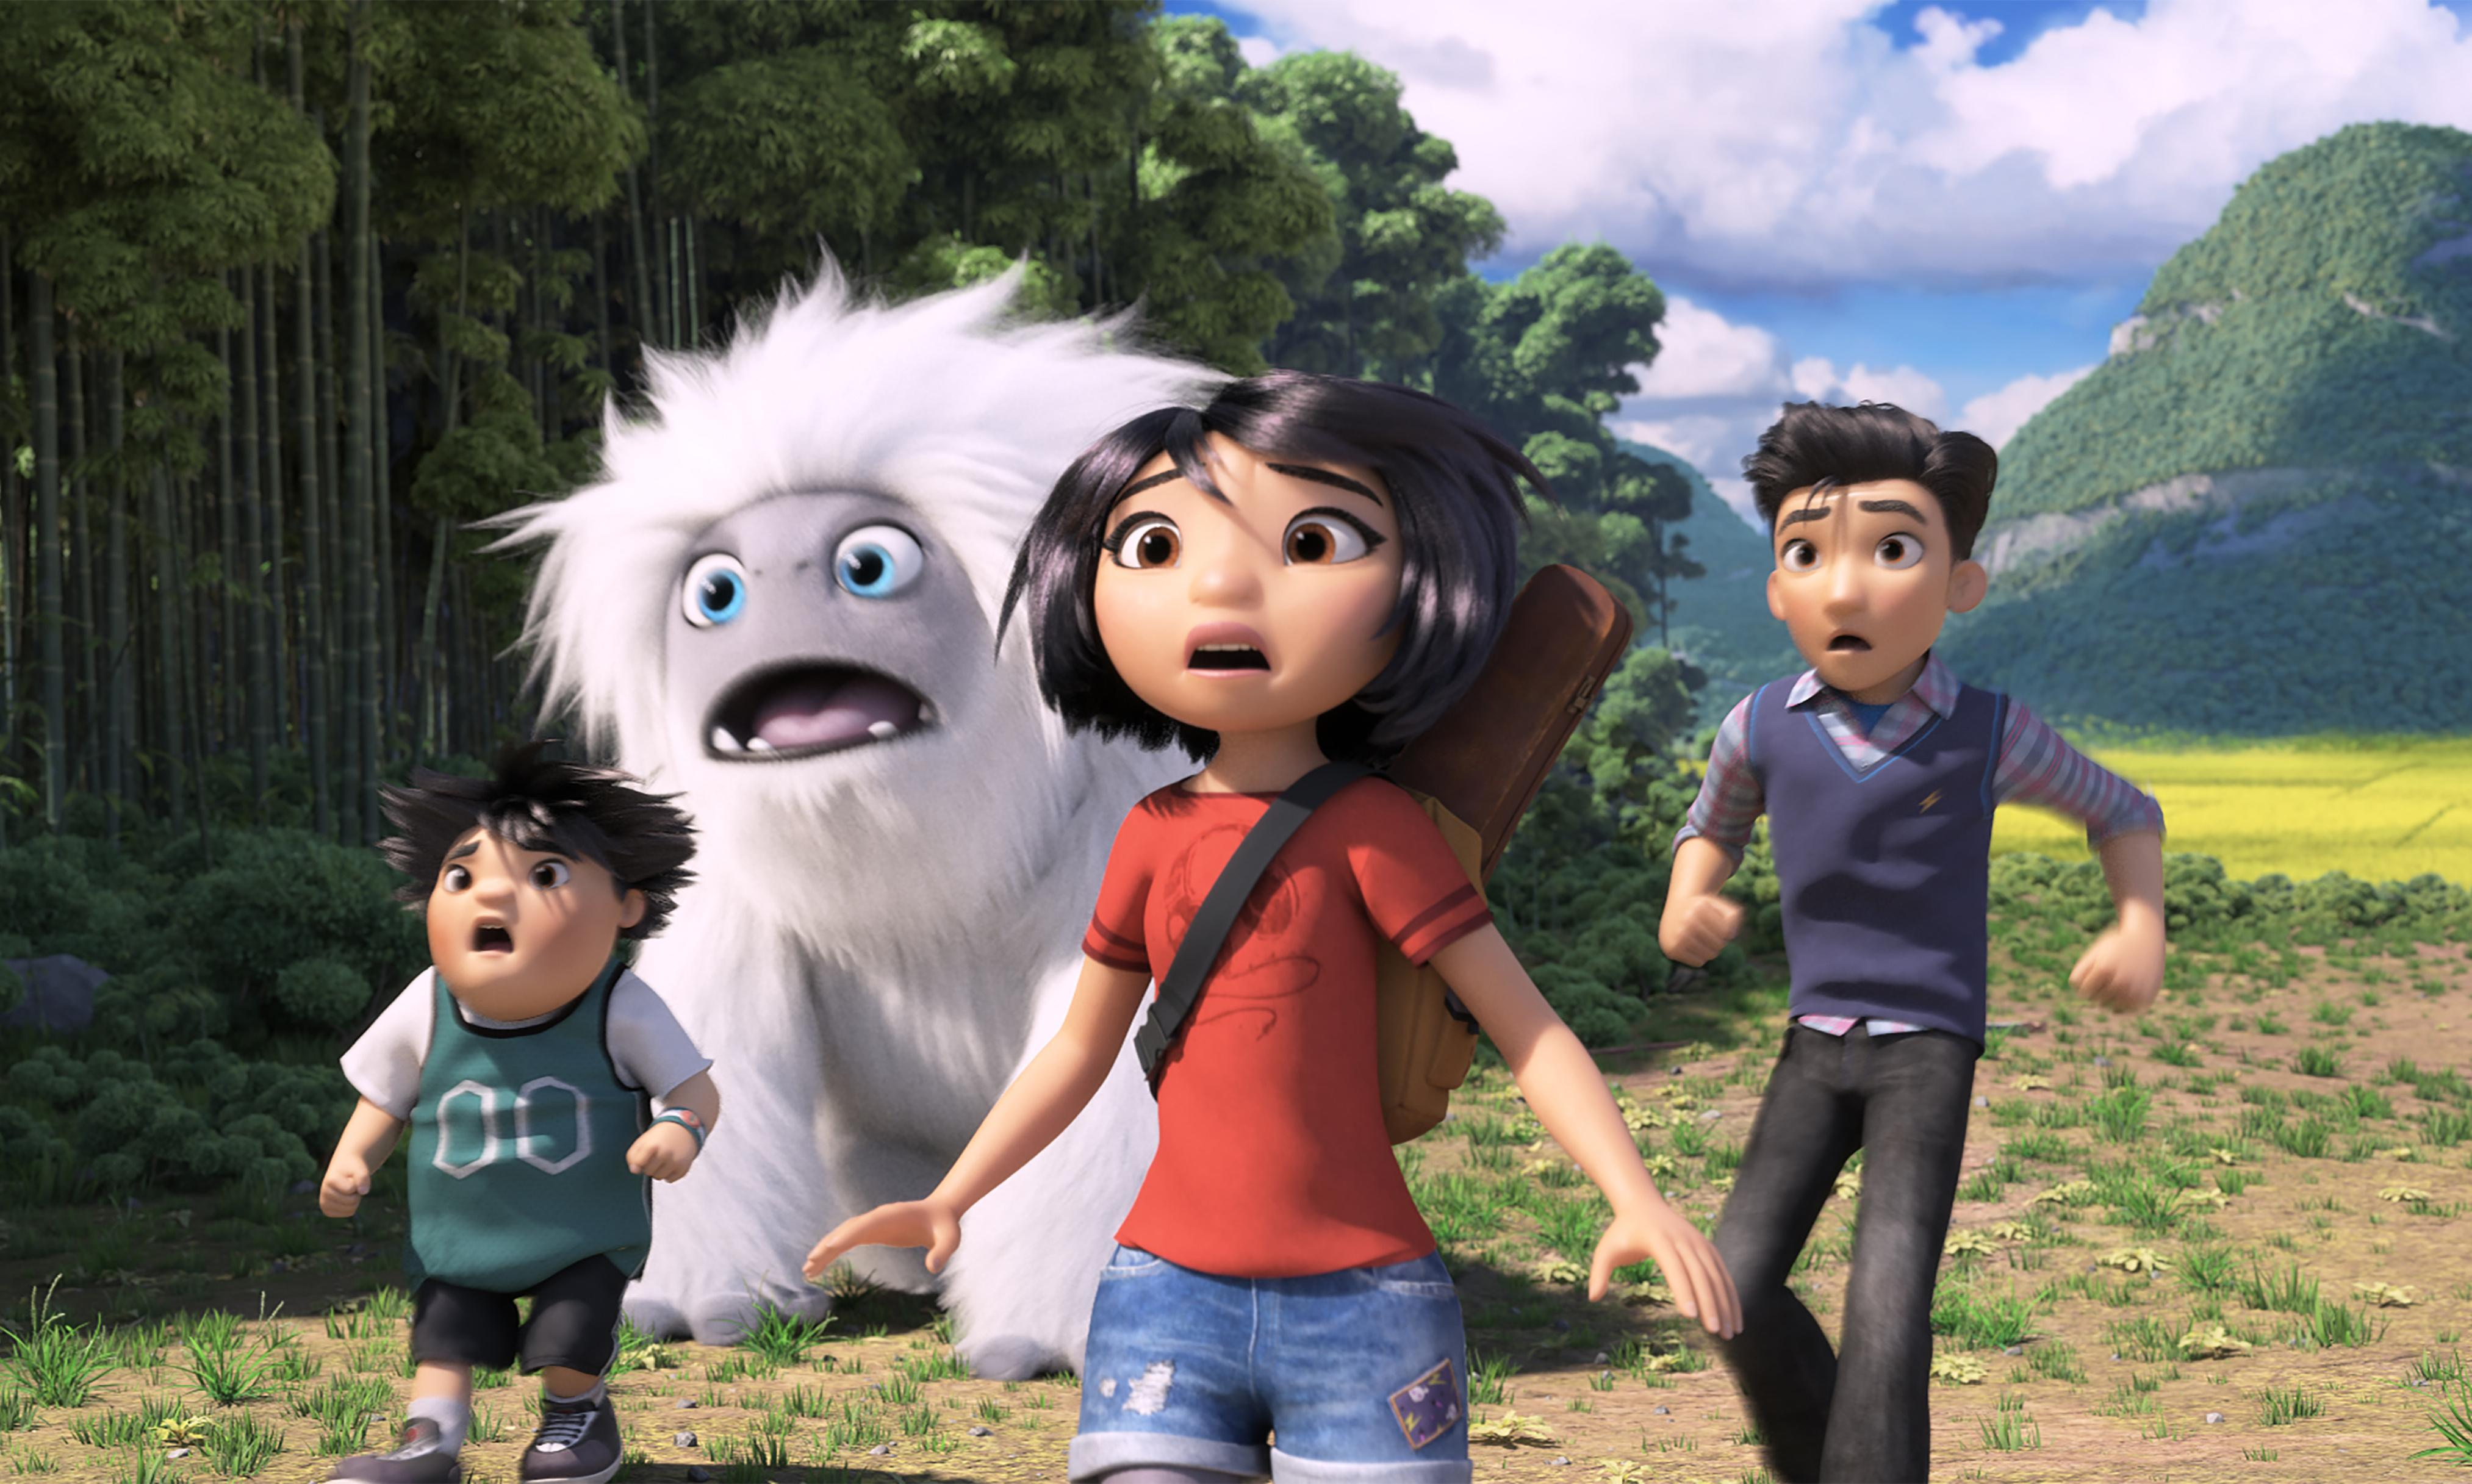 Abominable: anger grows over controversial map in Chinese children's film